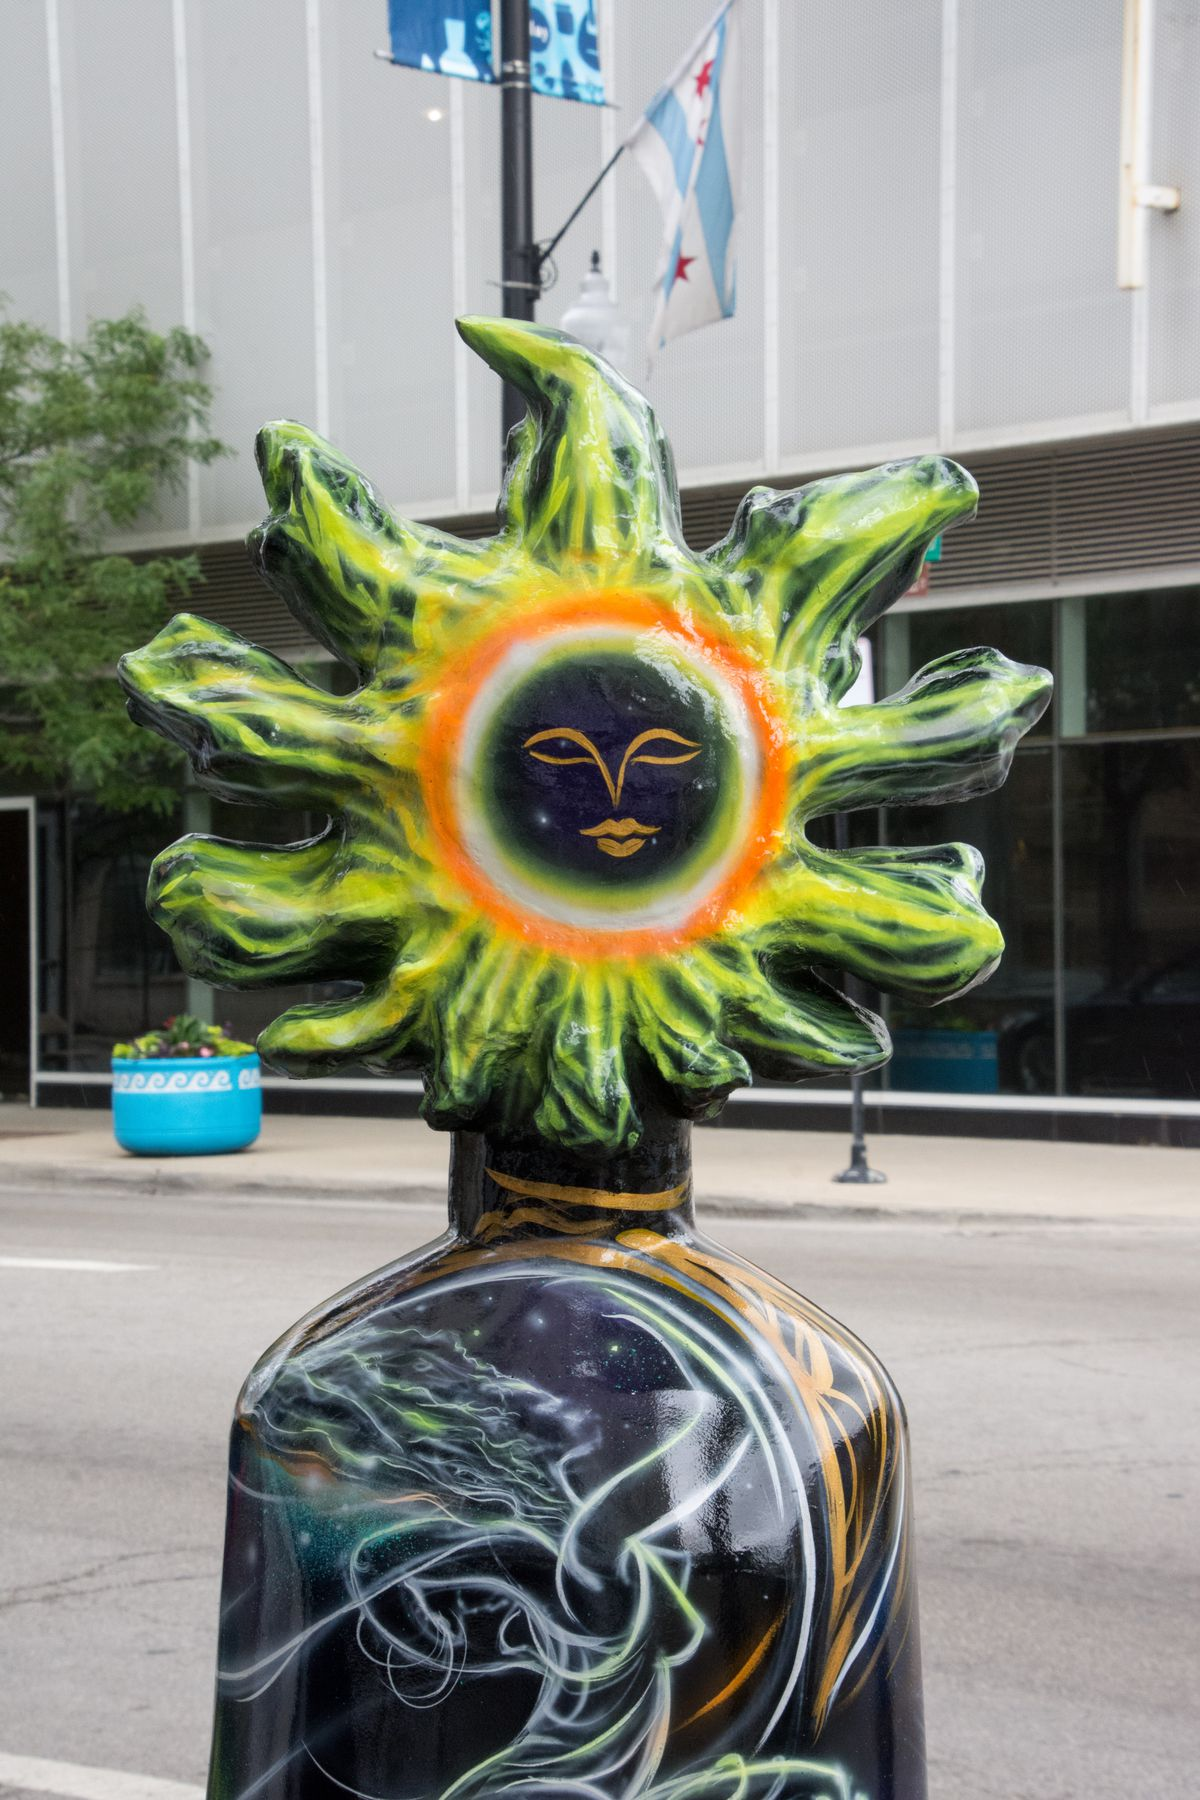 """This work of art by Tyrue Slang Jones is one of 24 sculptures featured in the outdoor exhibition """"Hello Helios"""" in Greektown."""